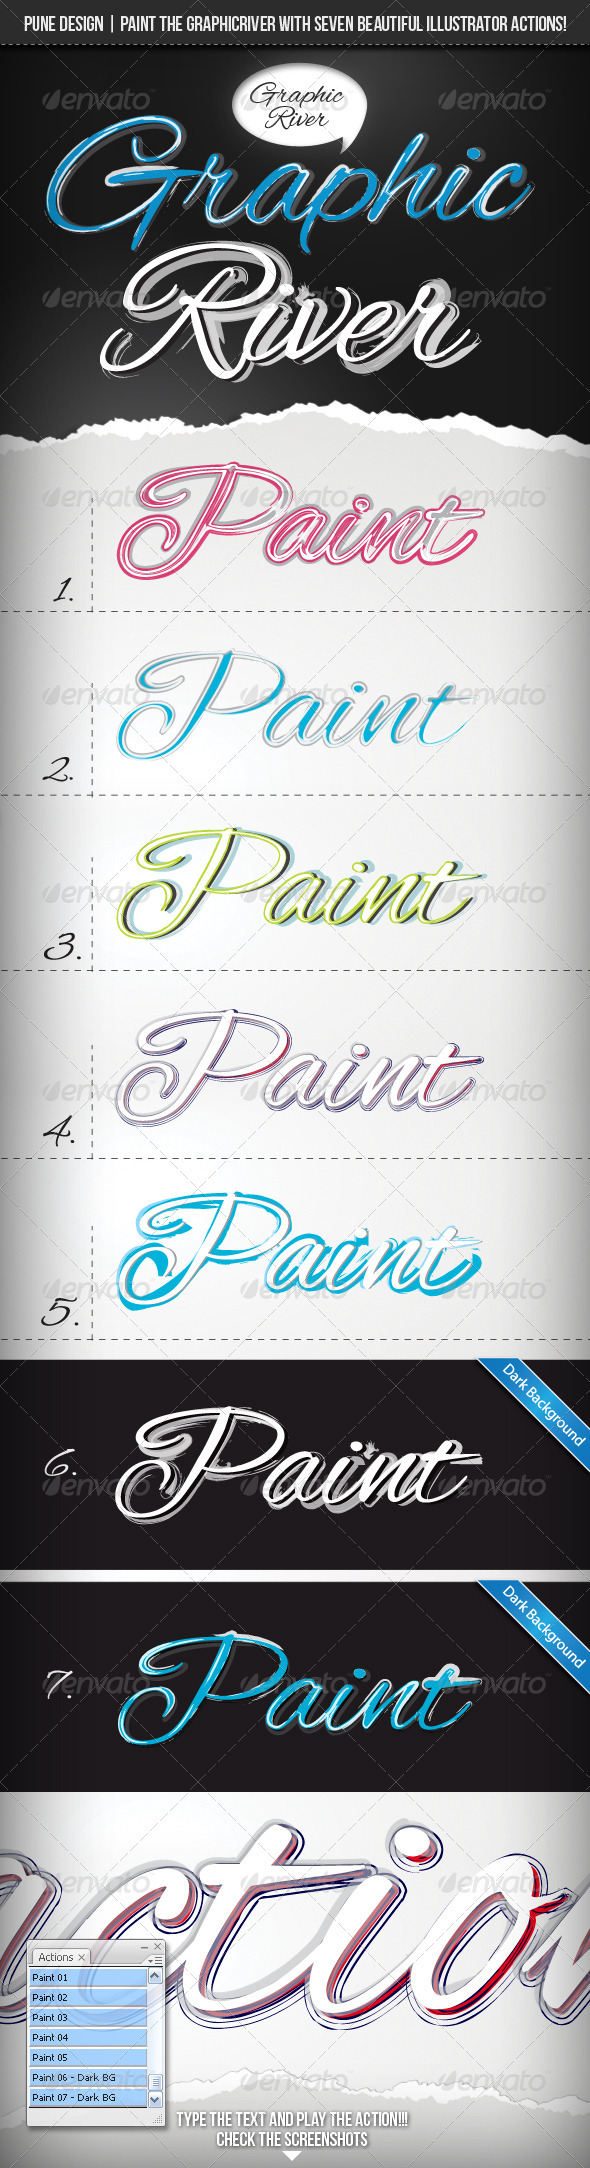 GraphicRiver Paint The River 7 Illustrator Actions 2281925